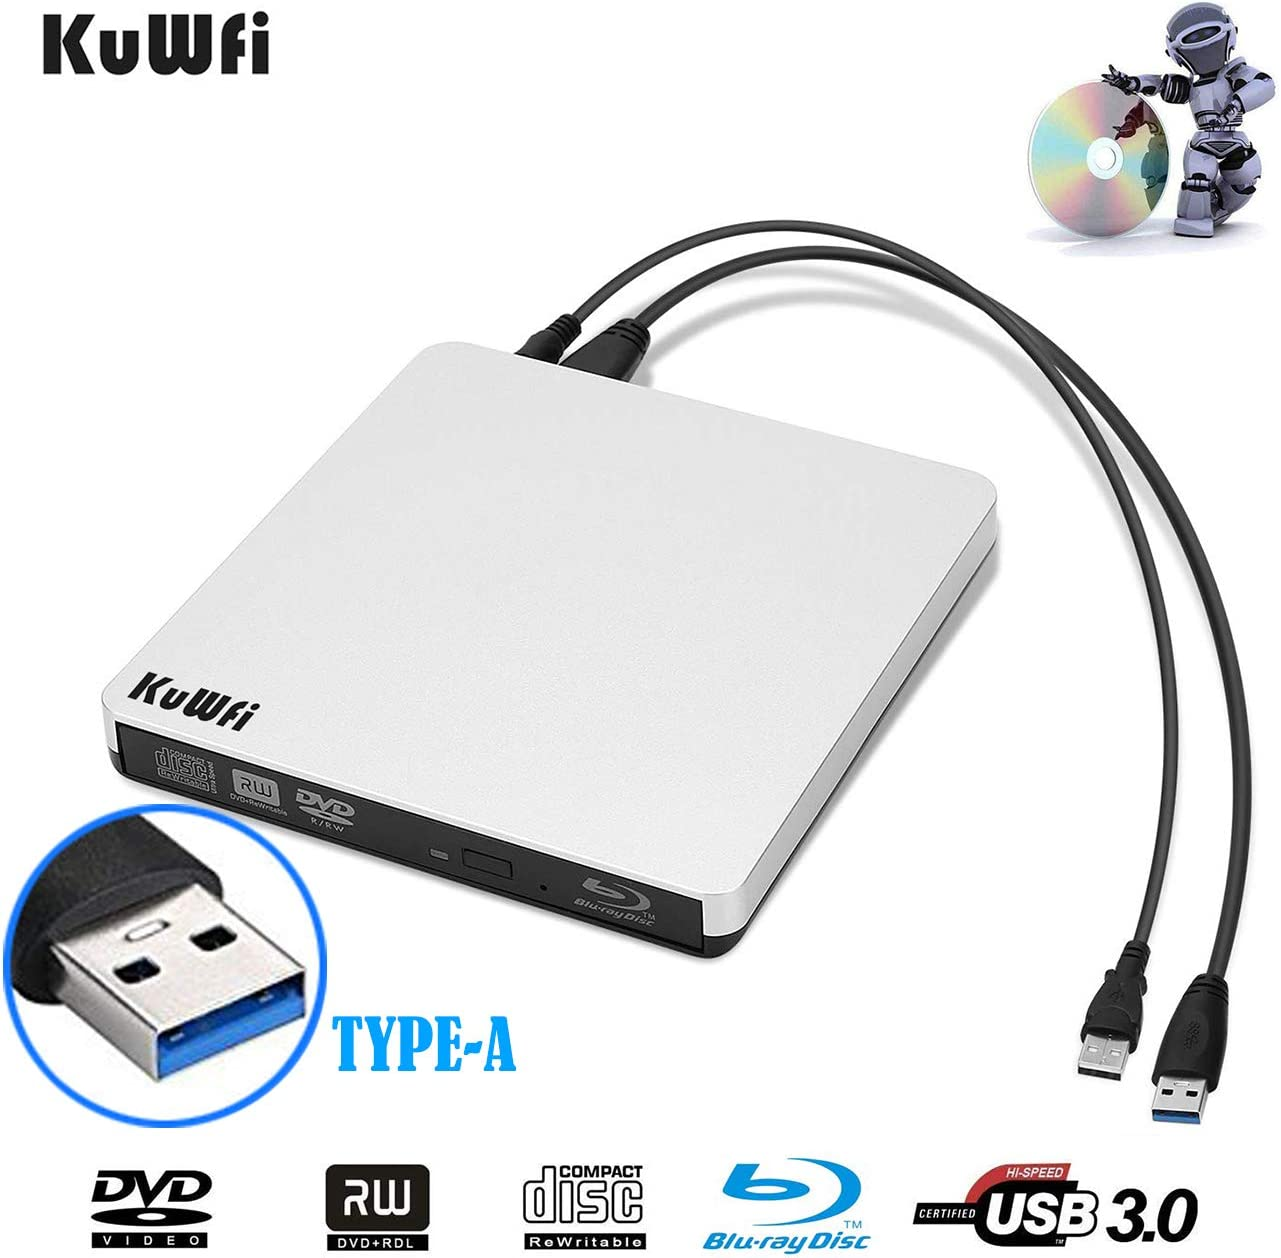 KuWFi External Blu Ray Drive USB 3.0 Player External CD/DVD Burner/Writer Blu-Ray Portable Drive Optical Drive Support 3D for MAC PC Laptop Notebook